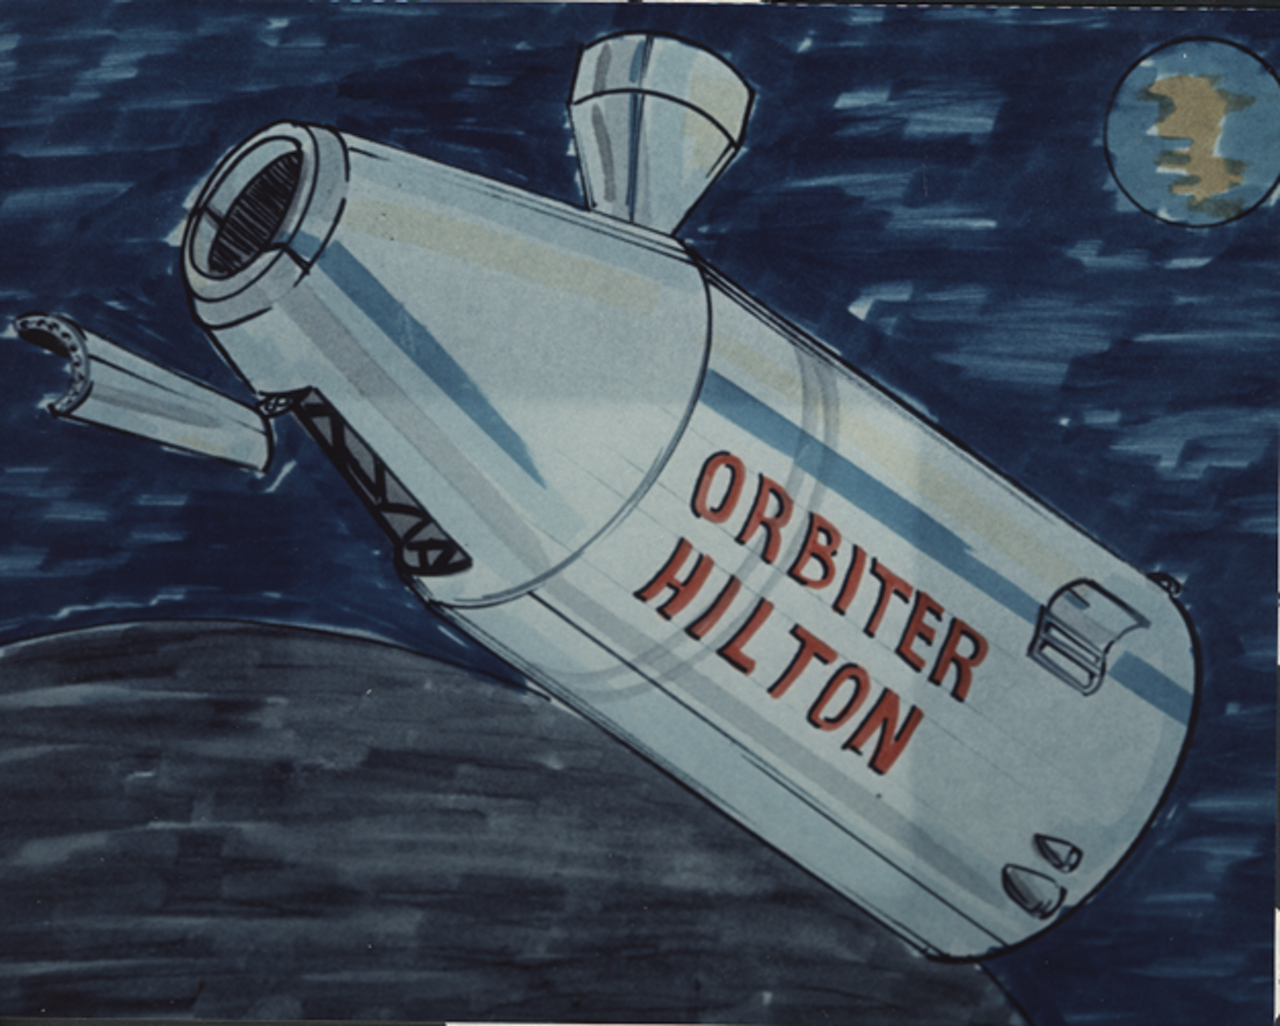 Concept drawing for the Orbiter Hilton hotel.